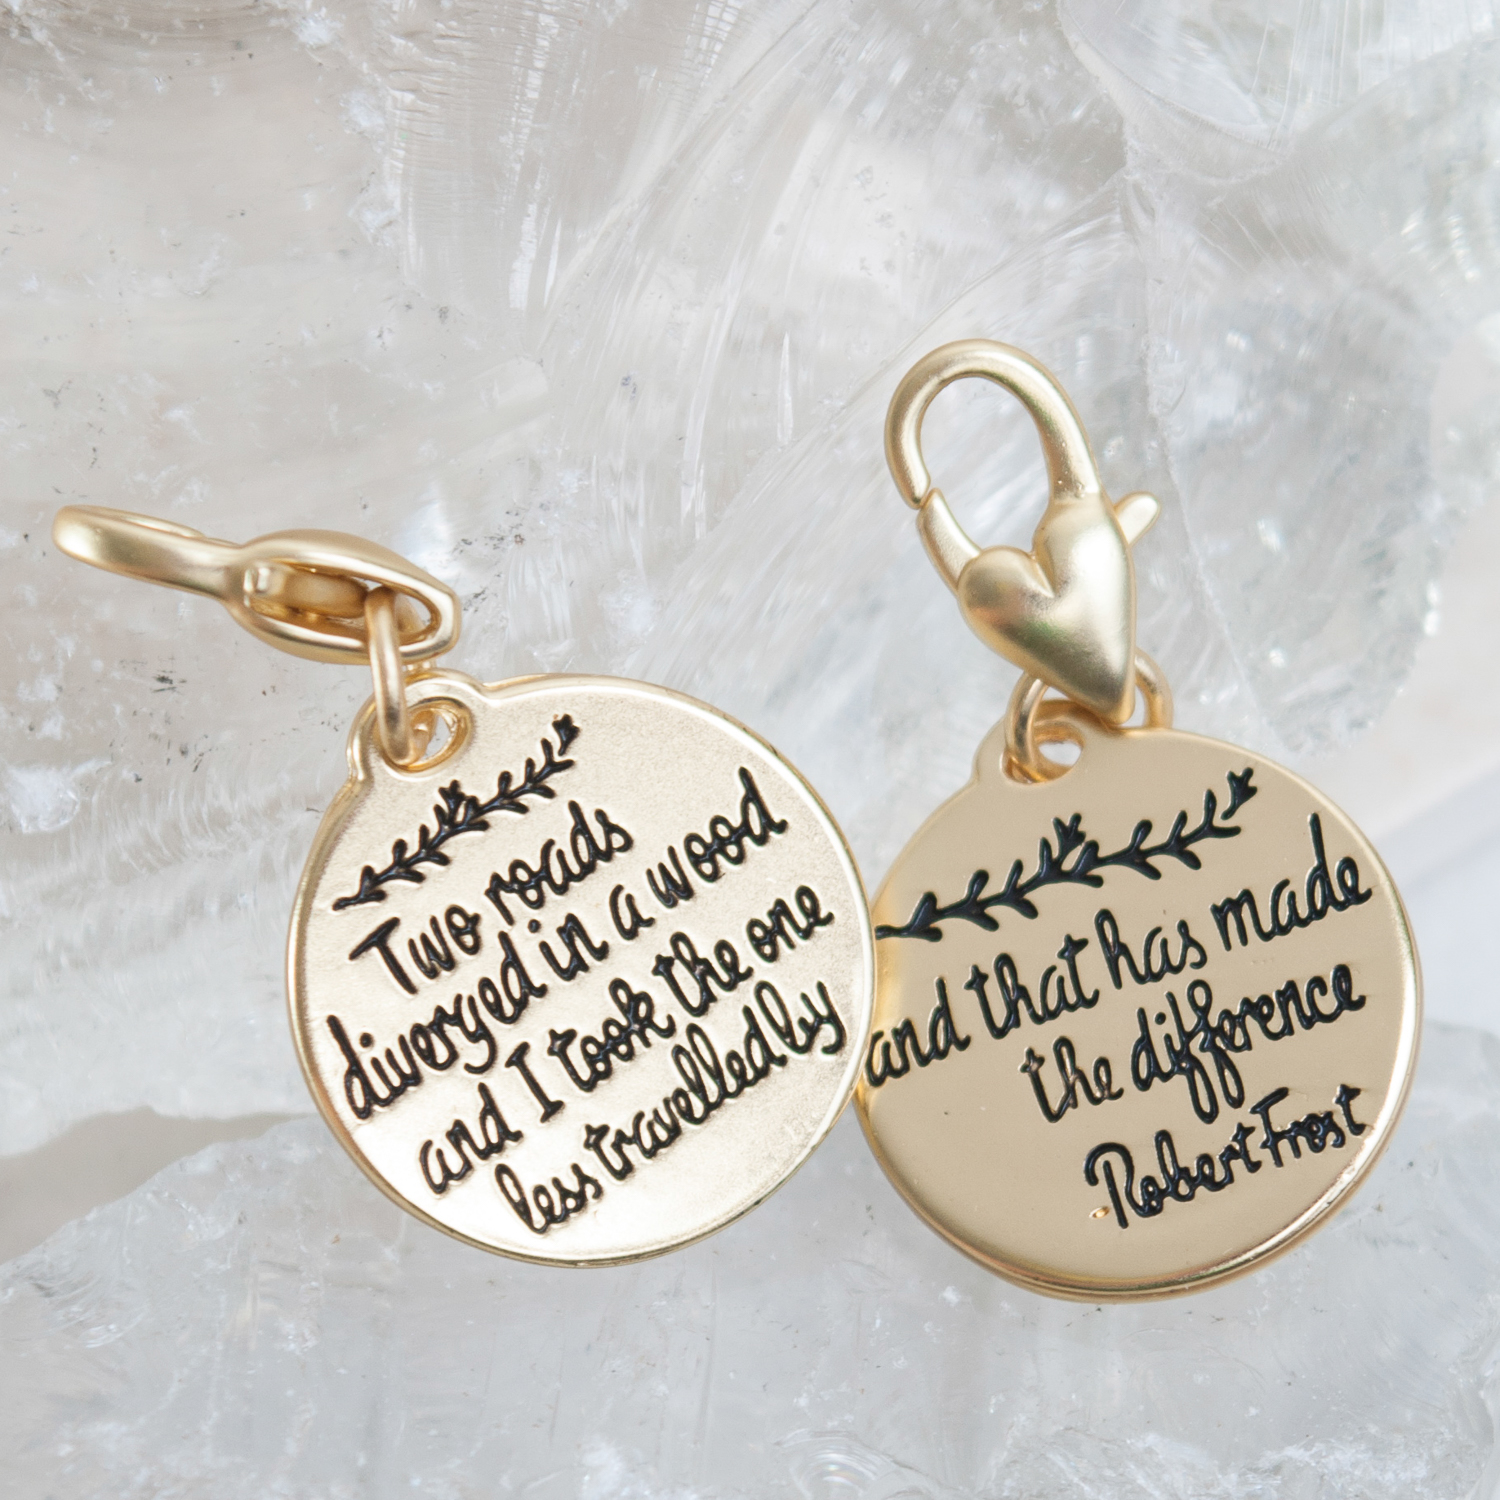 Two Roads Robert Frost Charm